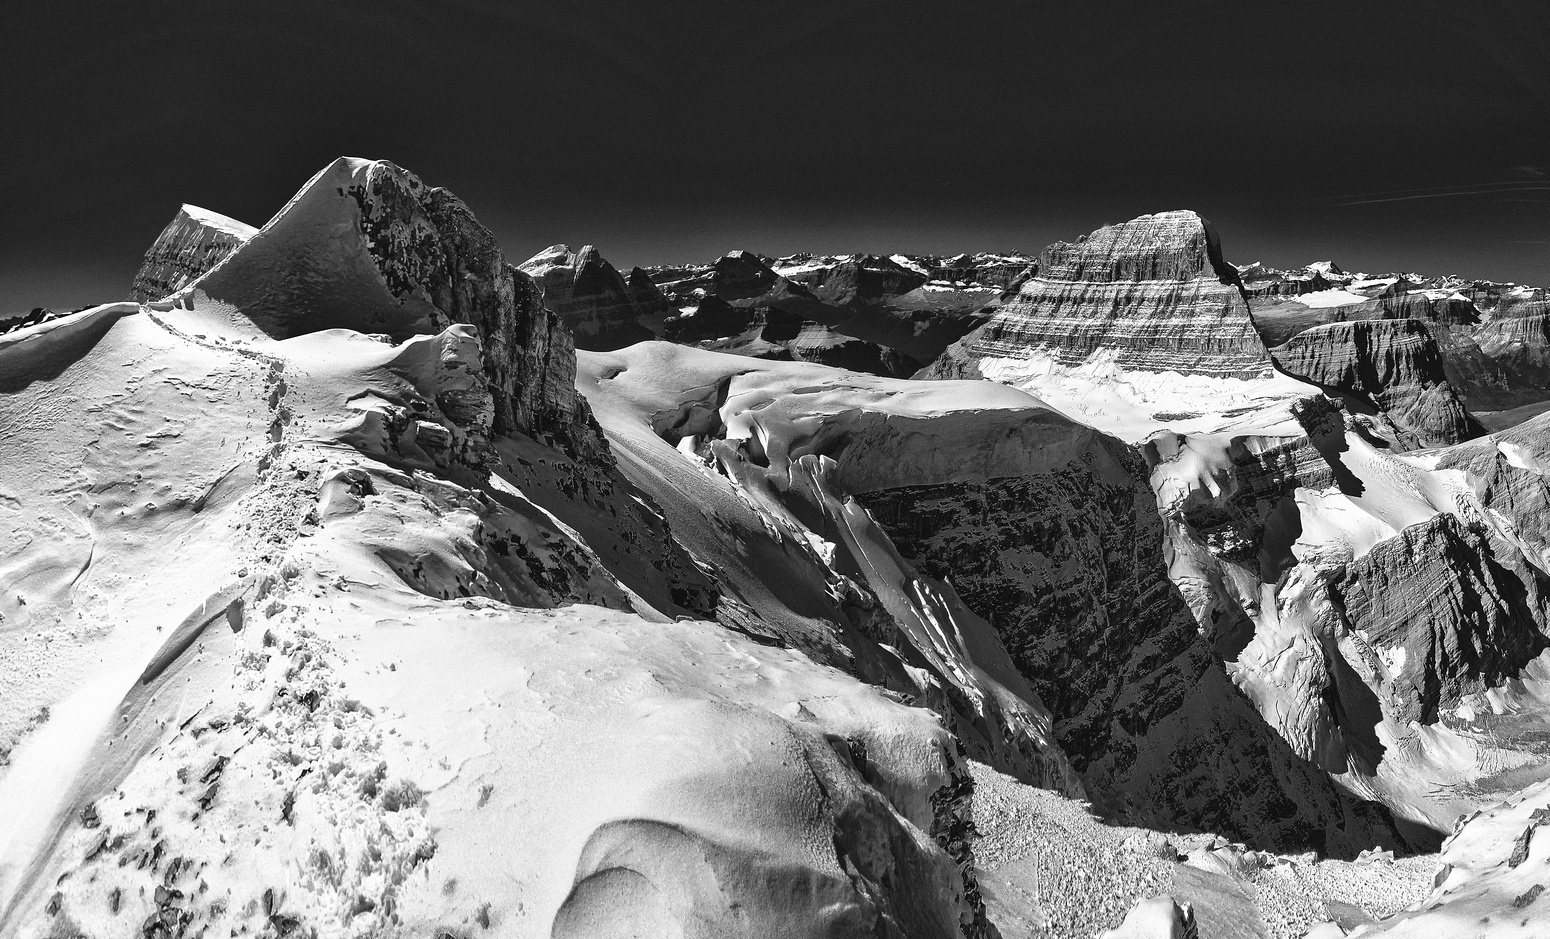 Dips and curves on the north ridge of Woolley and dizzying exposure down the west face towards Mount Alberta and it's north face.